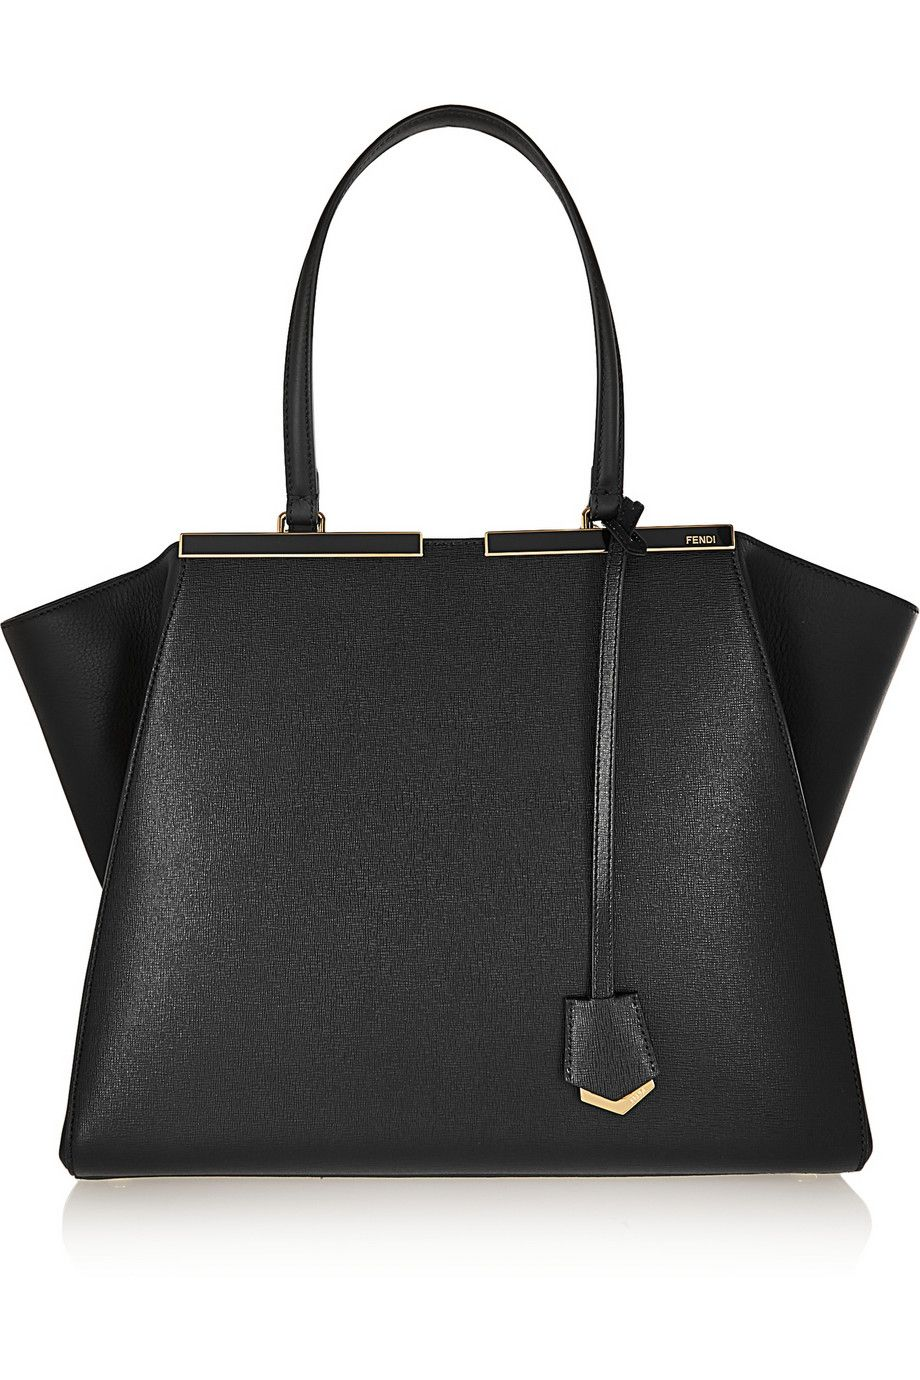 Fendi   3Jours medium textured-leather tote   NET-A-PORTER.COM ... 1876745f0a